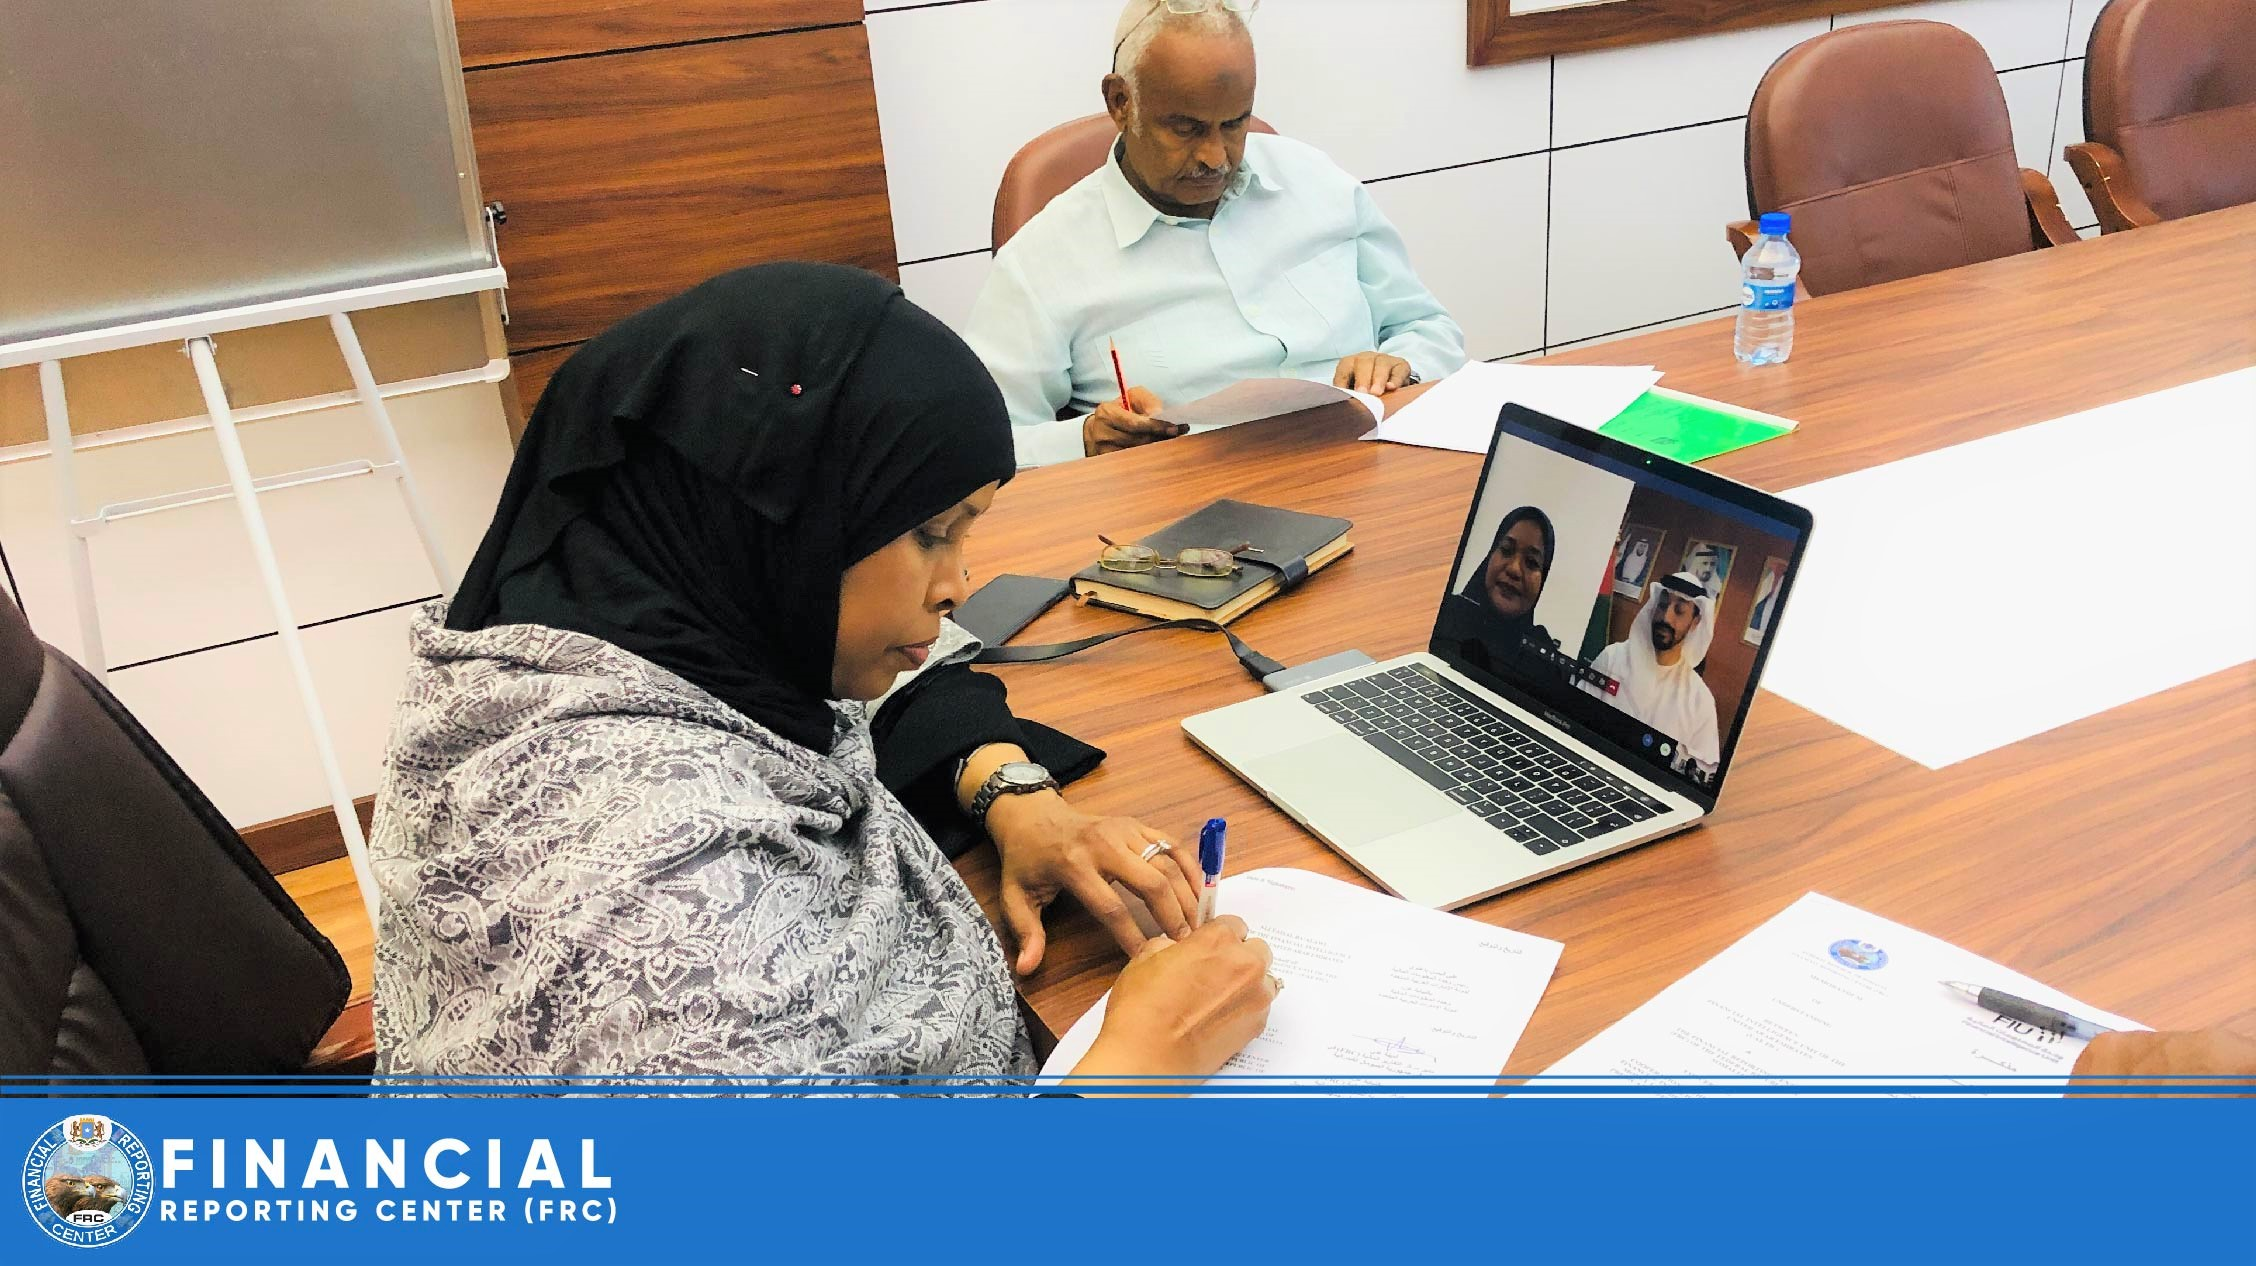 Somalia Financial Reporting Center (FRC) has signed MOU with United Arab Emirates – FIU